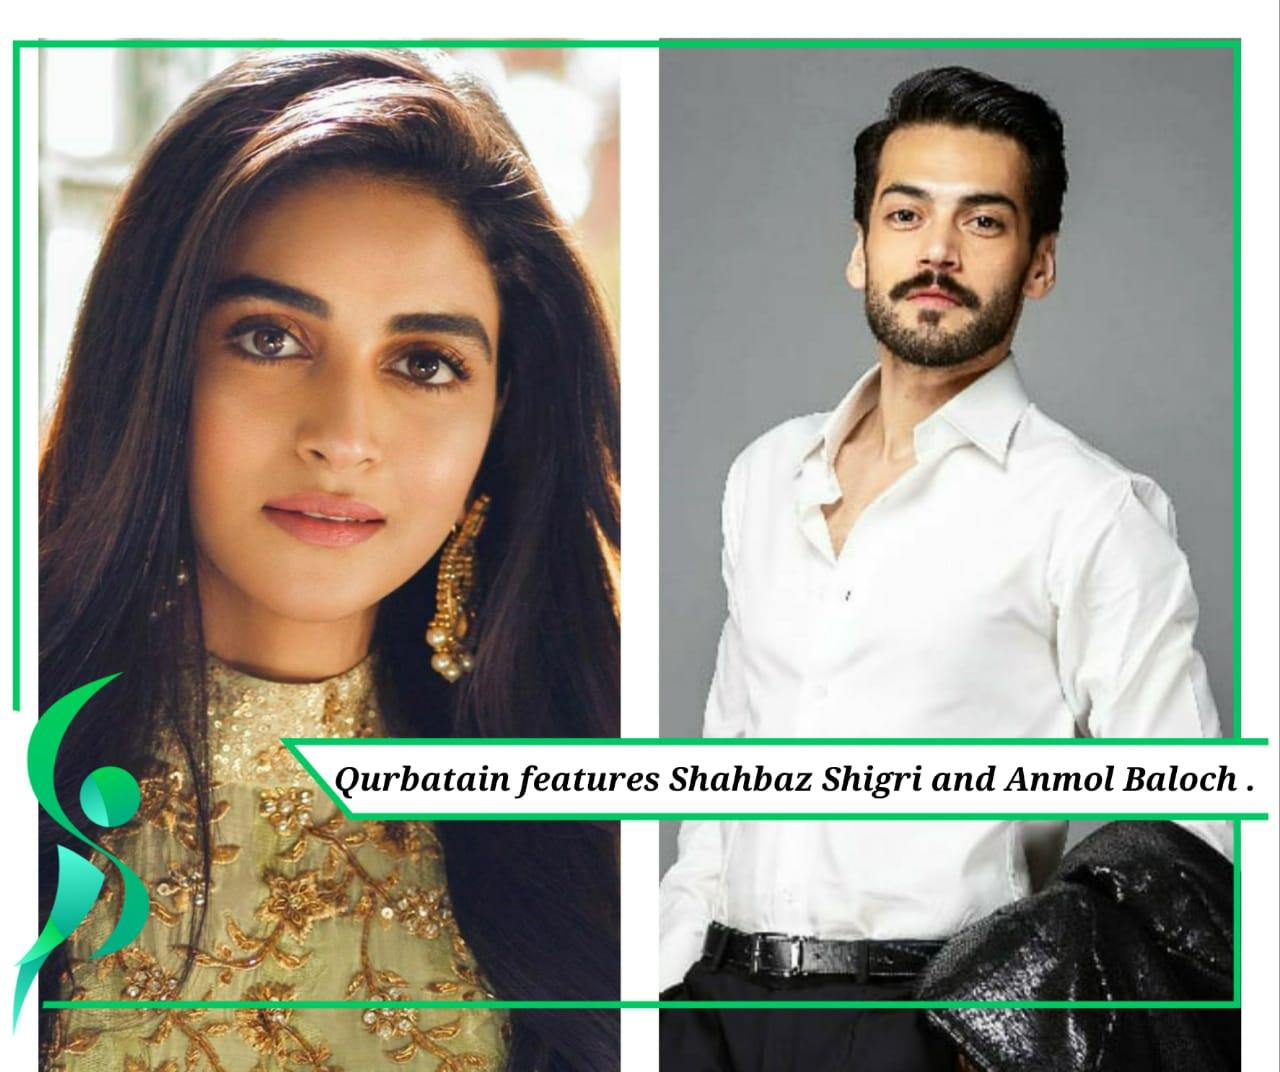 Qurbatain features Shahbaz Shigri and Anmol Baloch in lead roles.